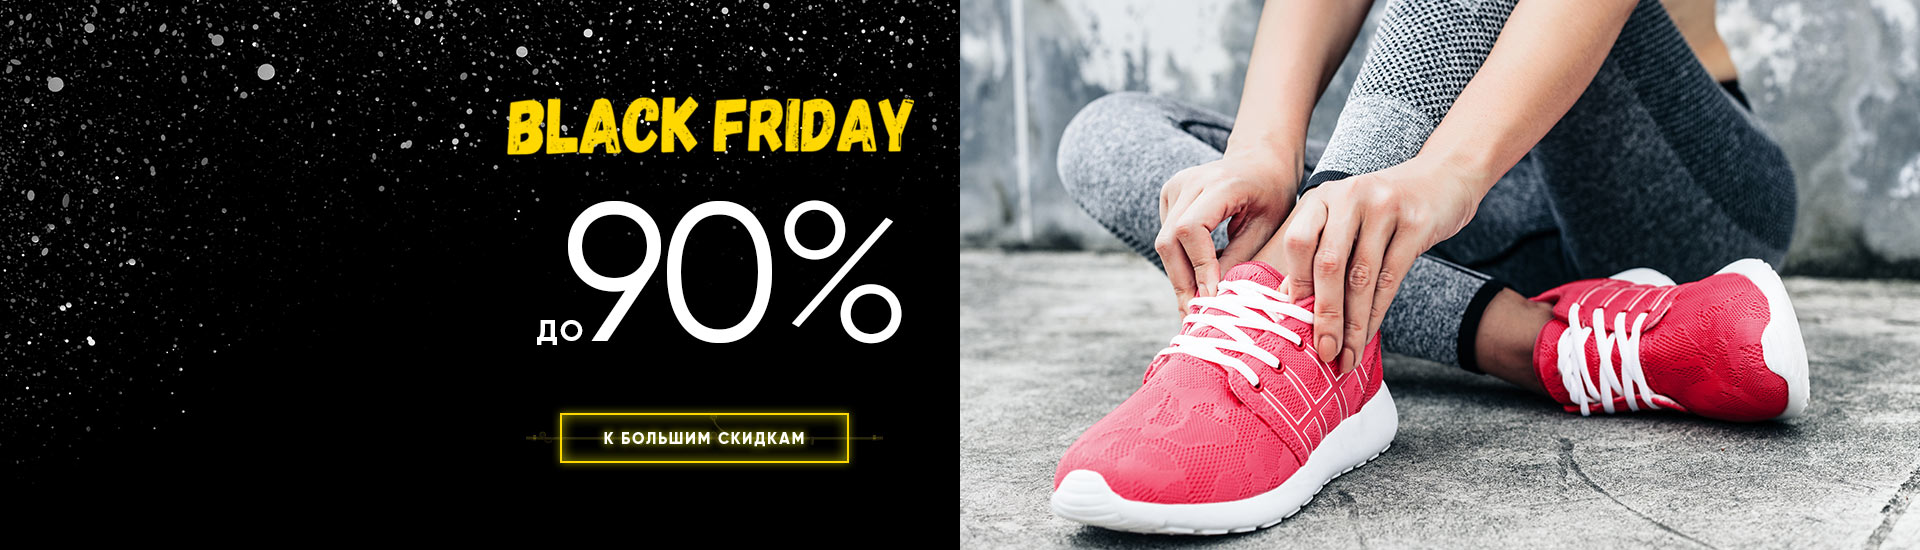 Black Friday: Спорт